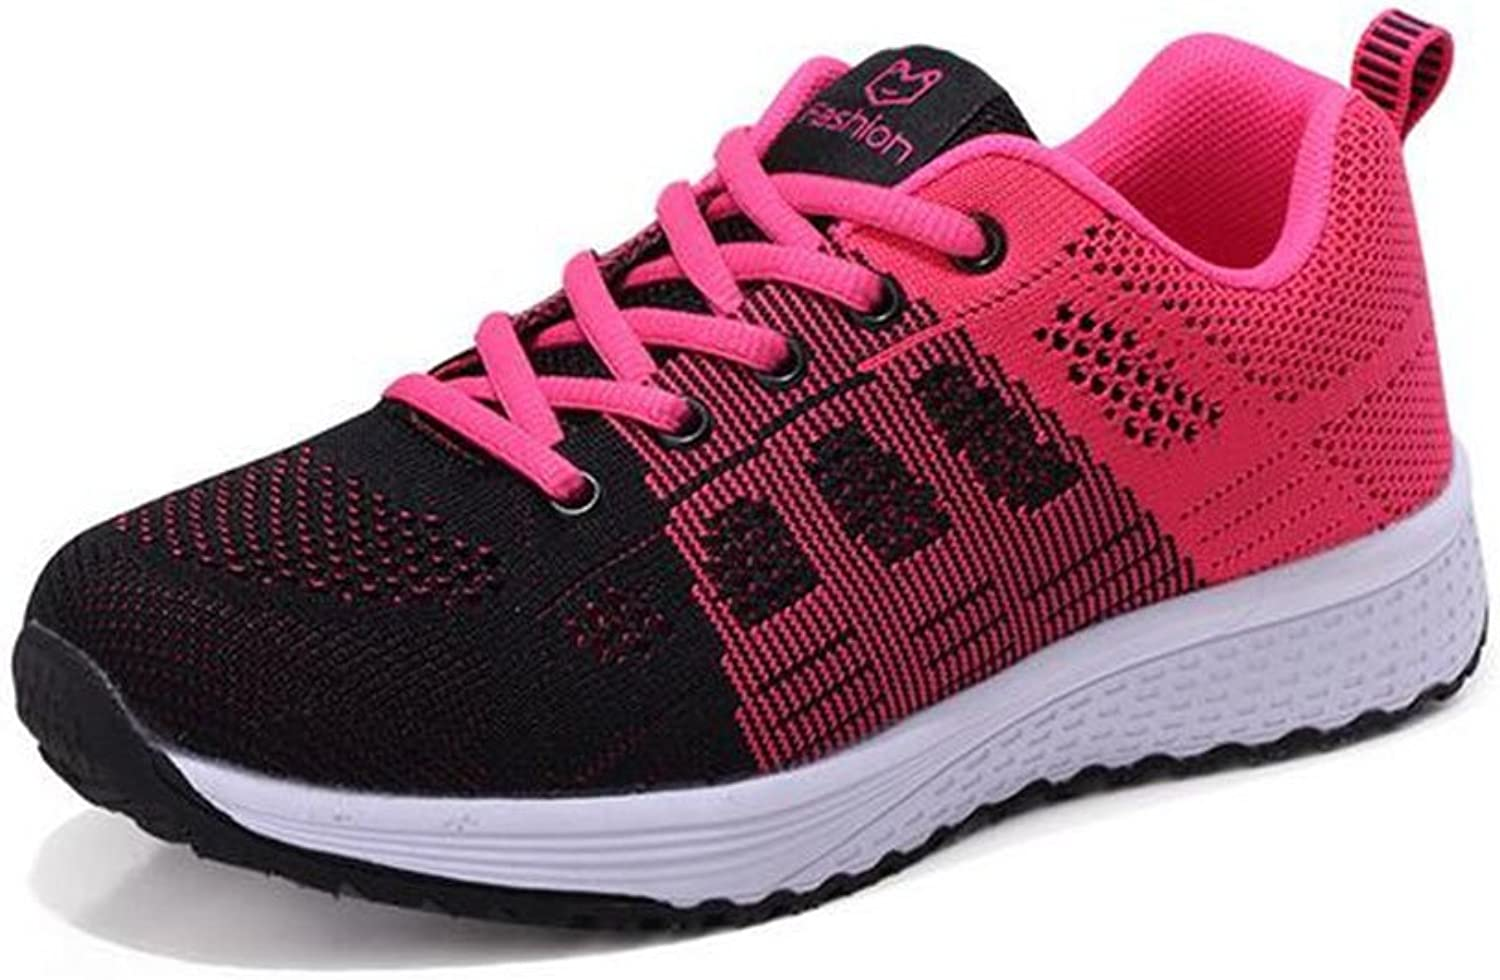 Womens's shoes Spring New Sneakers,Ladies Black Casual shoes,mesh Breathable Light Soles Little White shoes